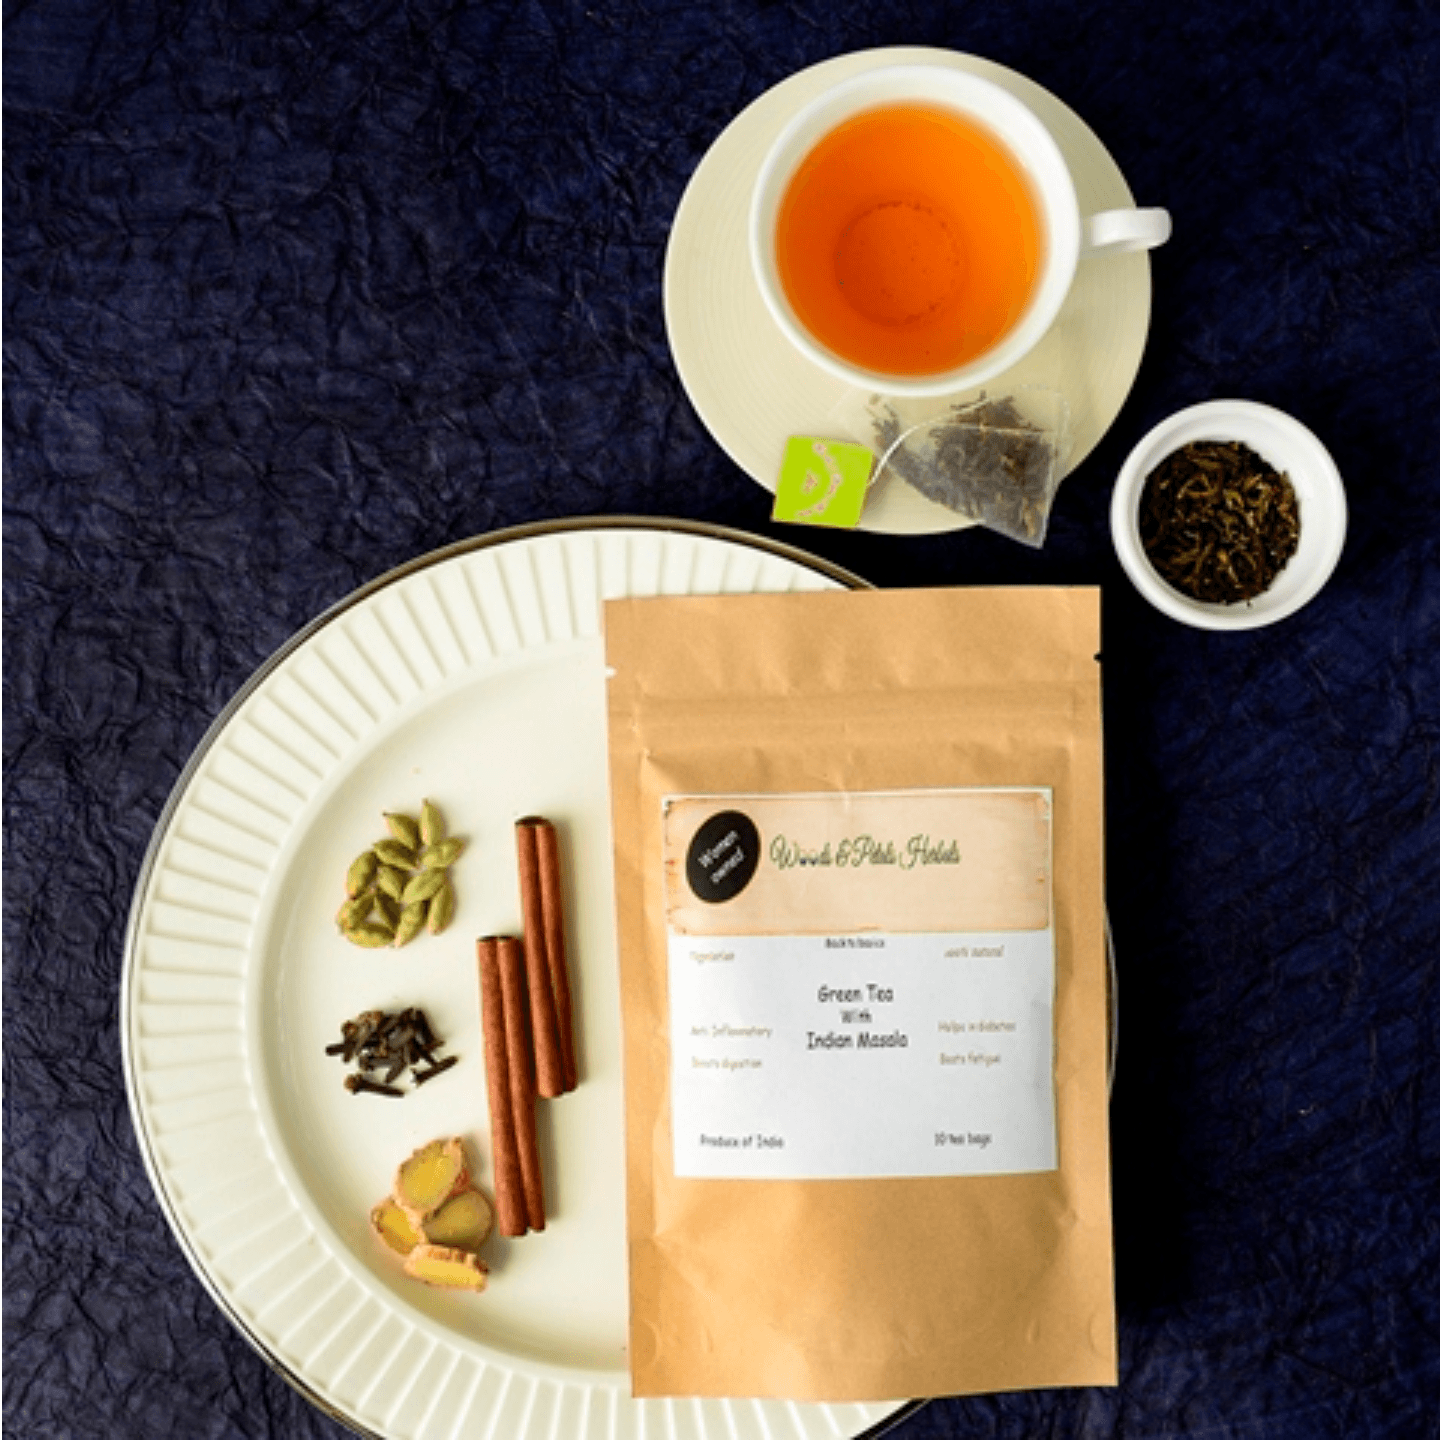 Darjeeling Green tea with Indian Masala